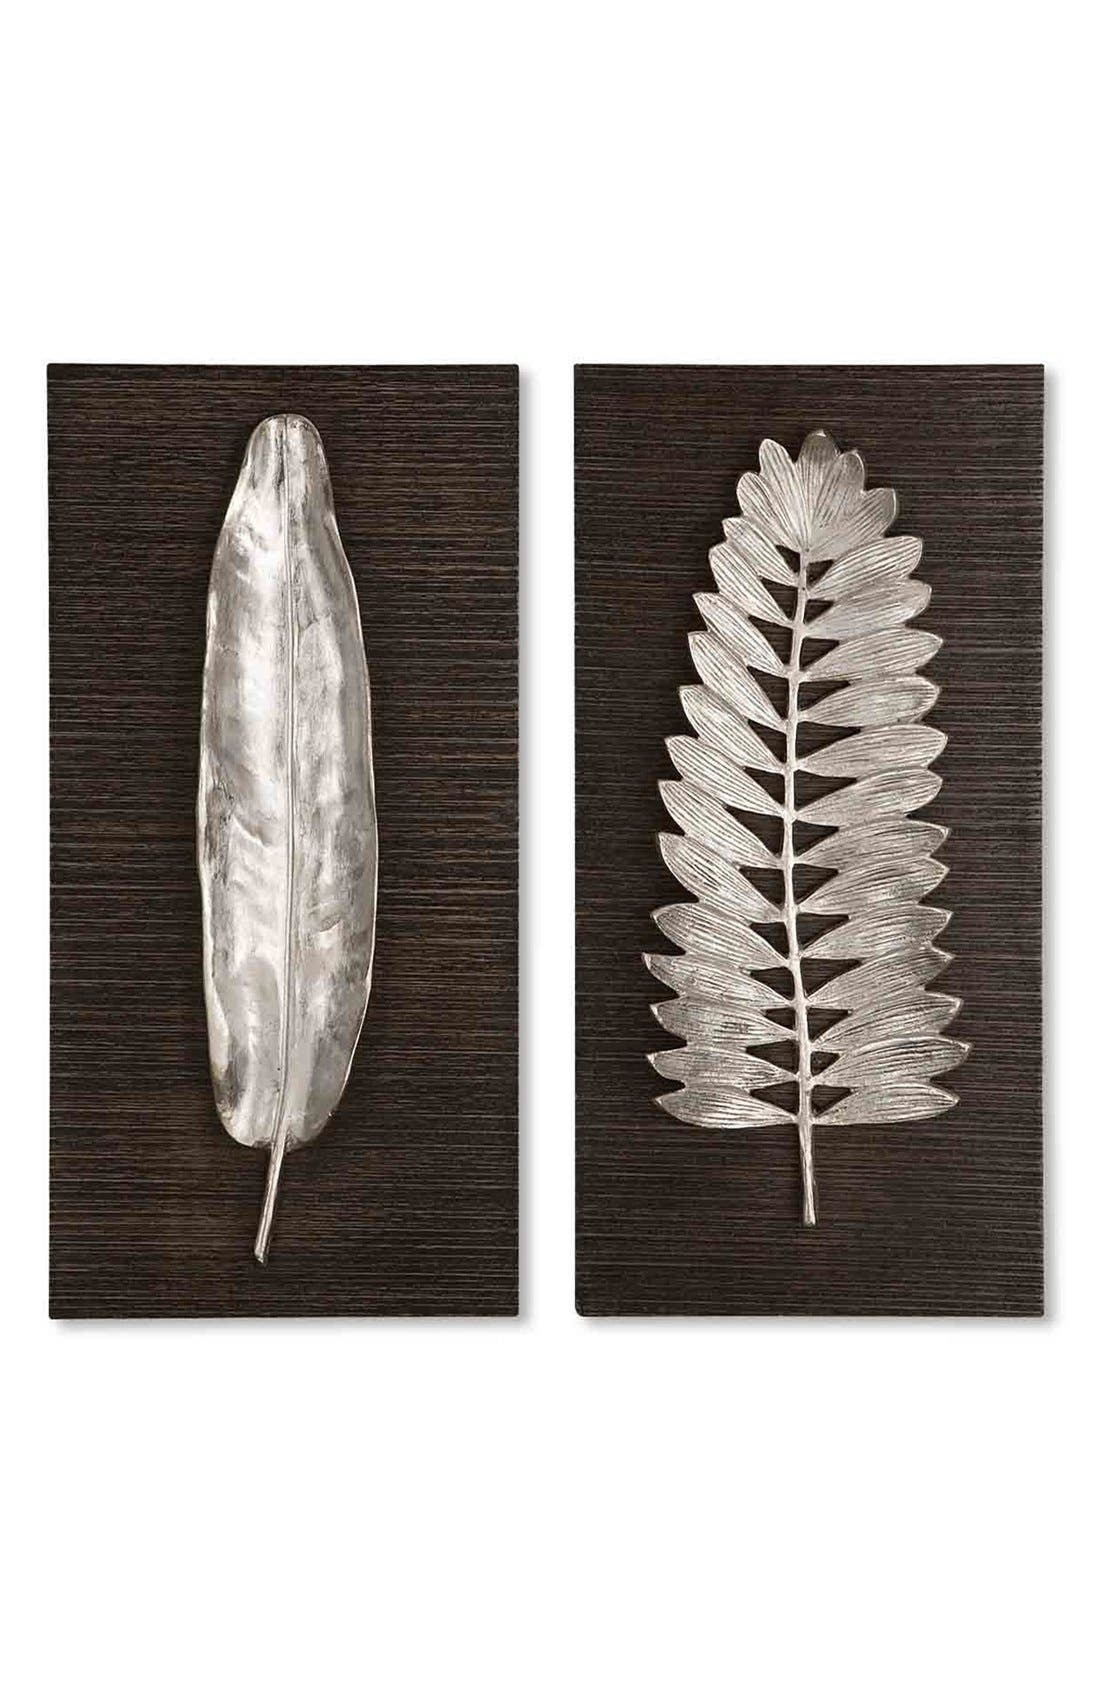 Main Image - Uttermost 'Silver Leaves' Wall Art (Set of 2)